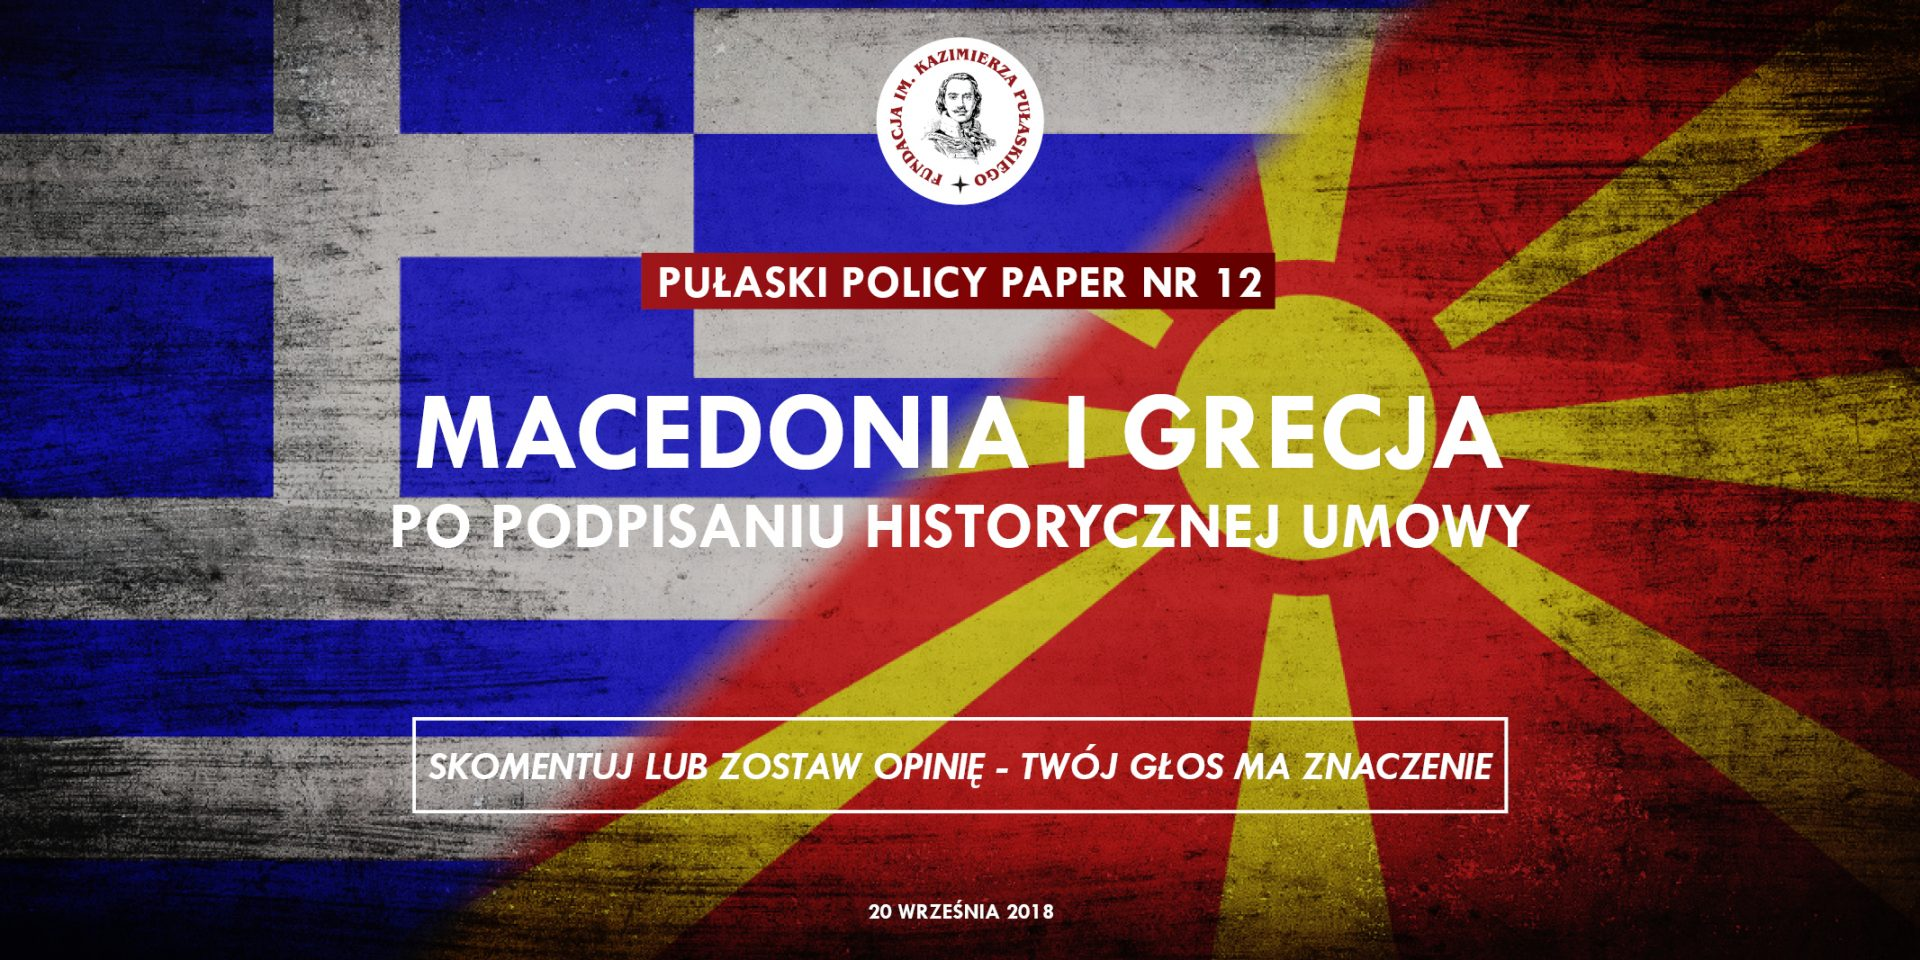 PULASKI POLICY PAPER: A. Domachowska – Implications of the historical agreement between Macedonia and Greece